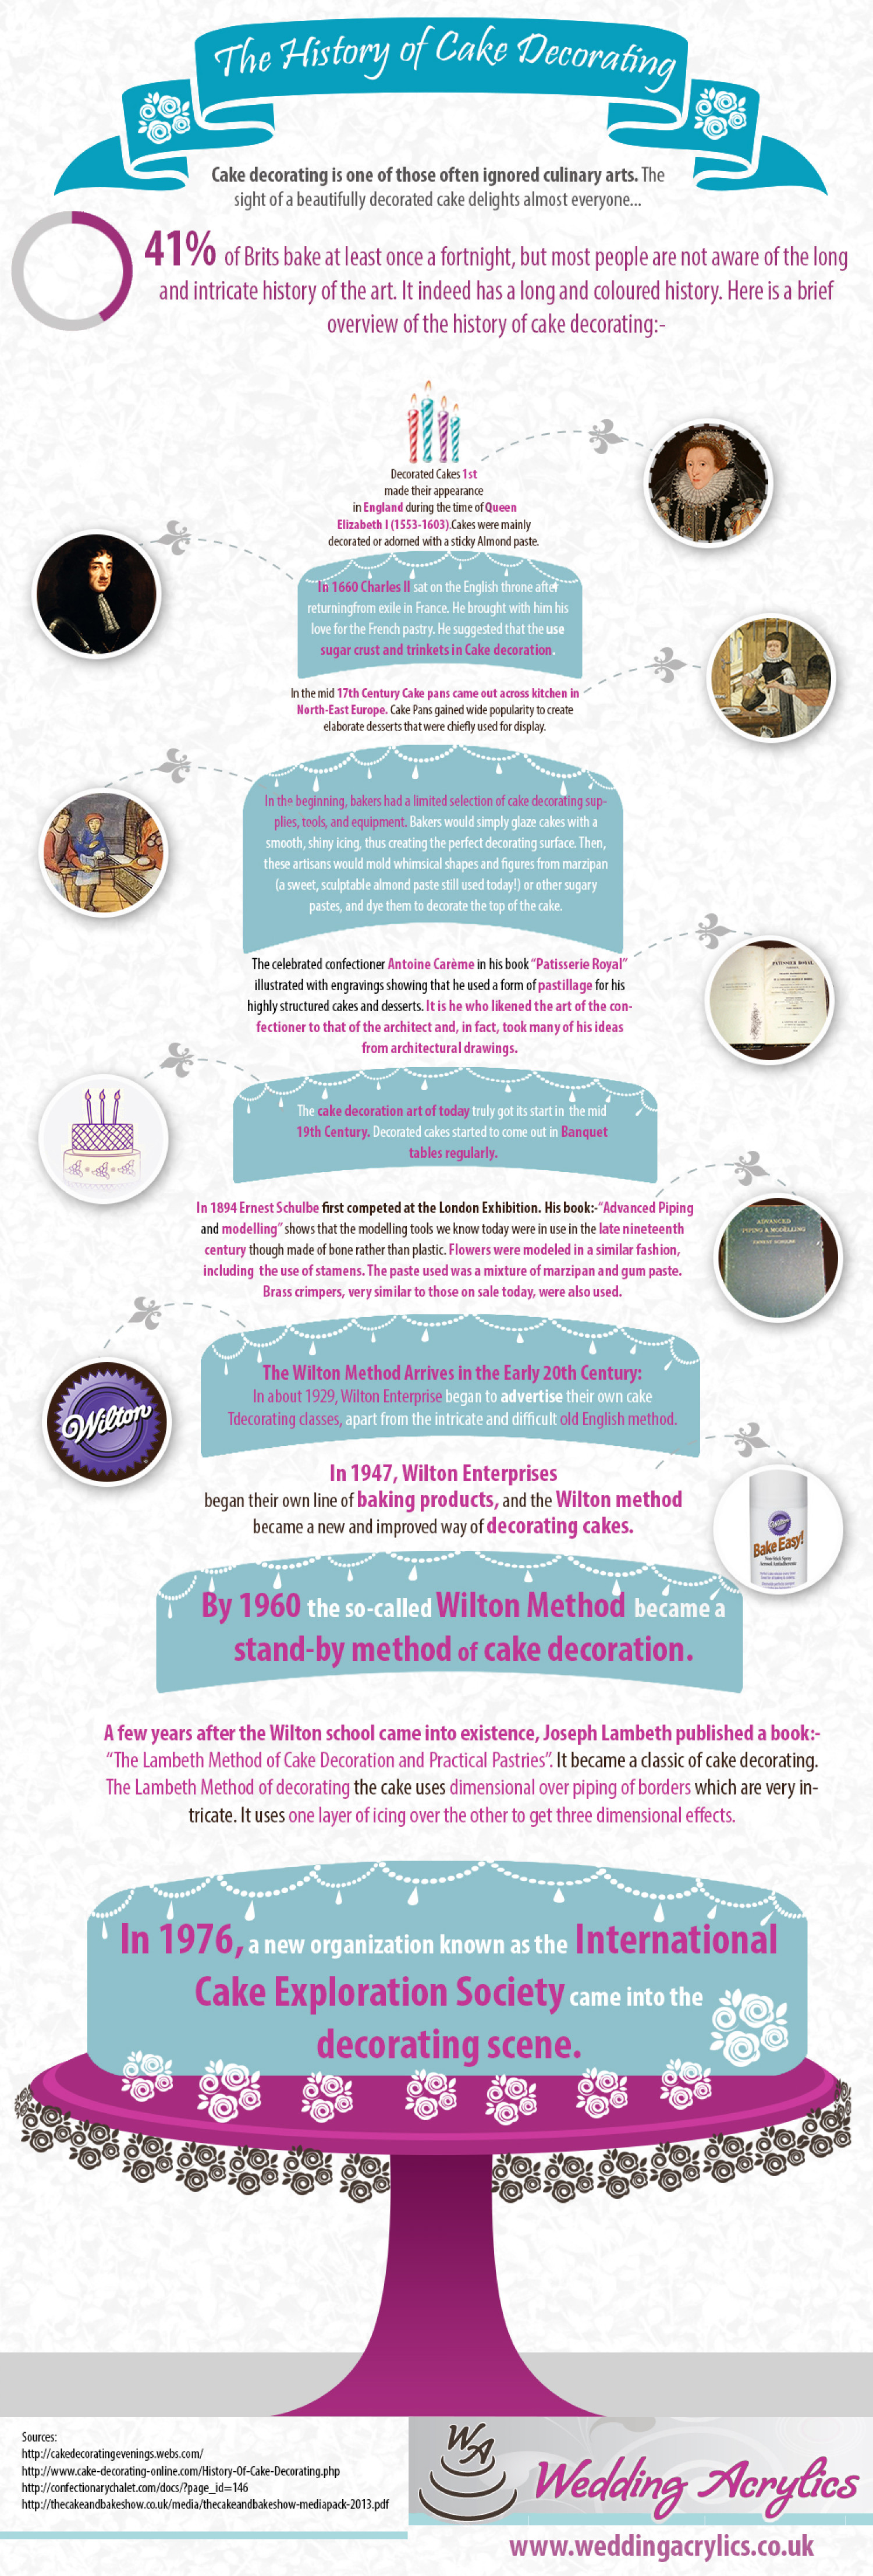 The History of Cake Decorating | Visual.ly